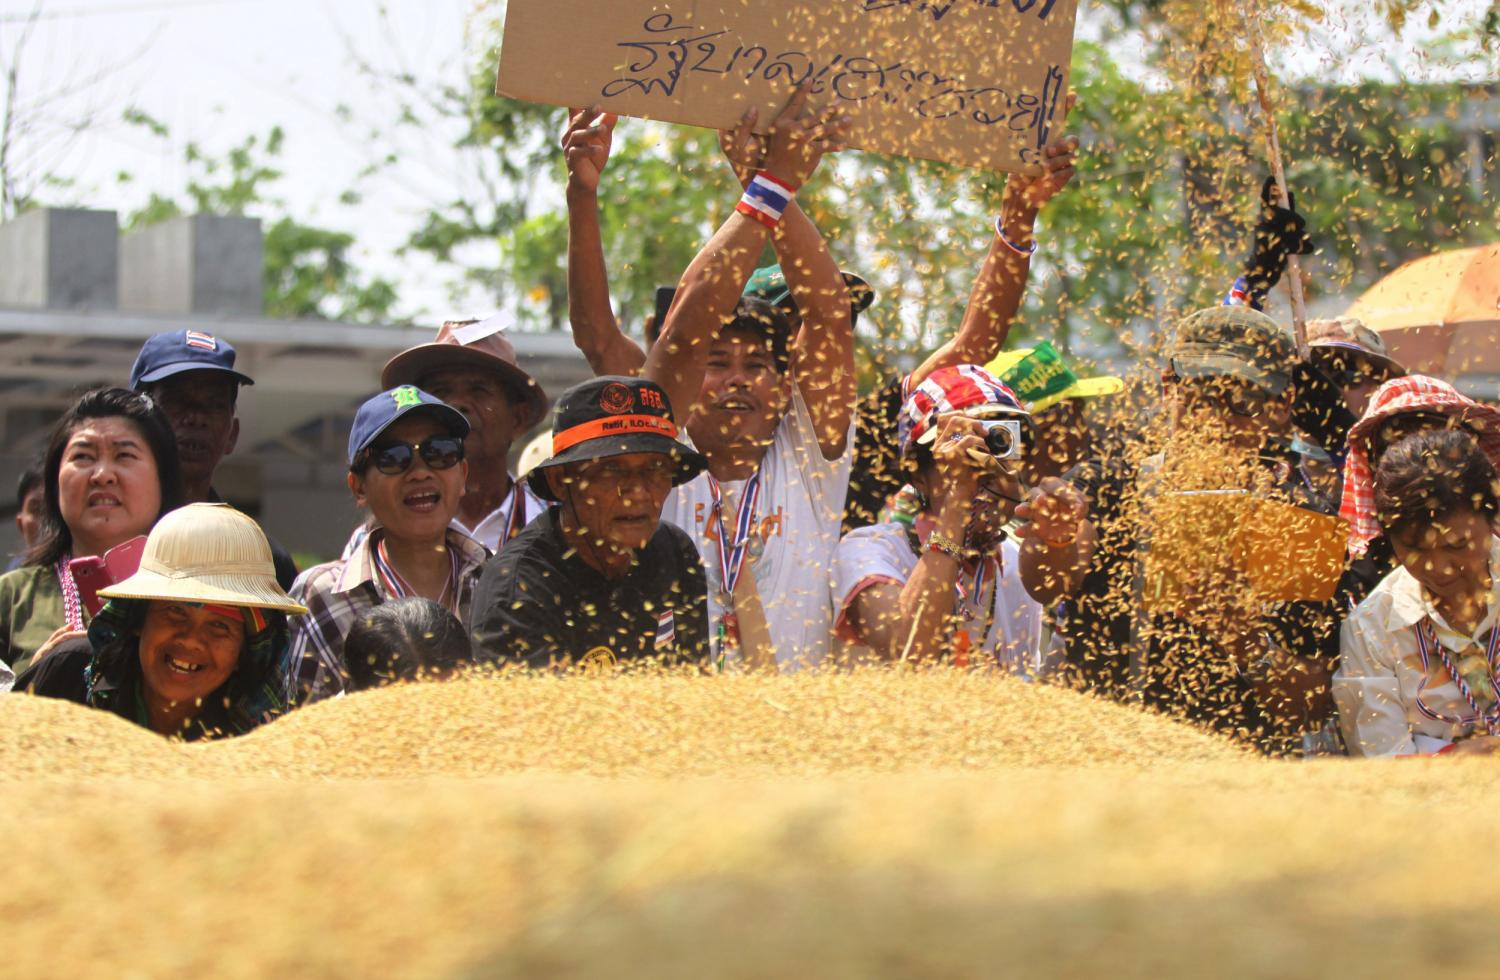 Farmers staged a protest in March 2014 in front of the Bank for Agriculture and Agricultural Cooperatives, accusing the lender of delaying payment for pledged paddy. (Post Today photo)